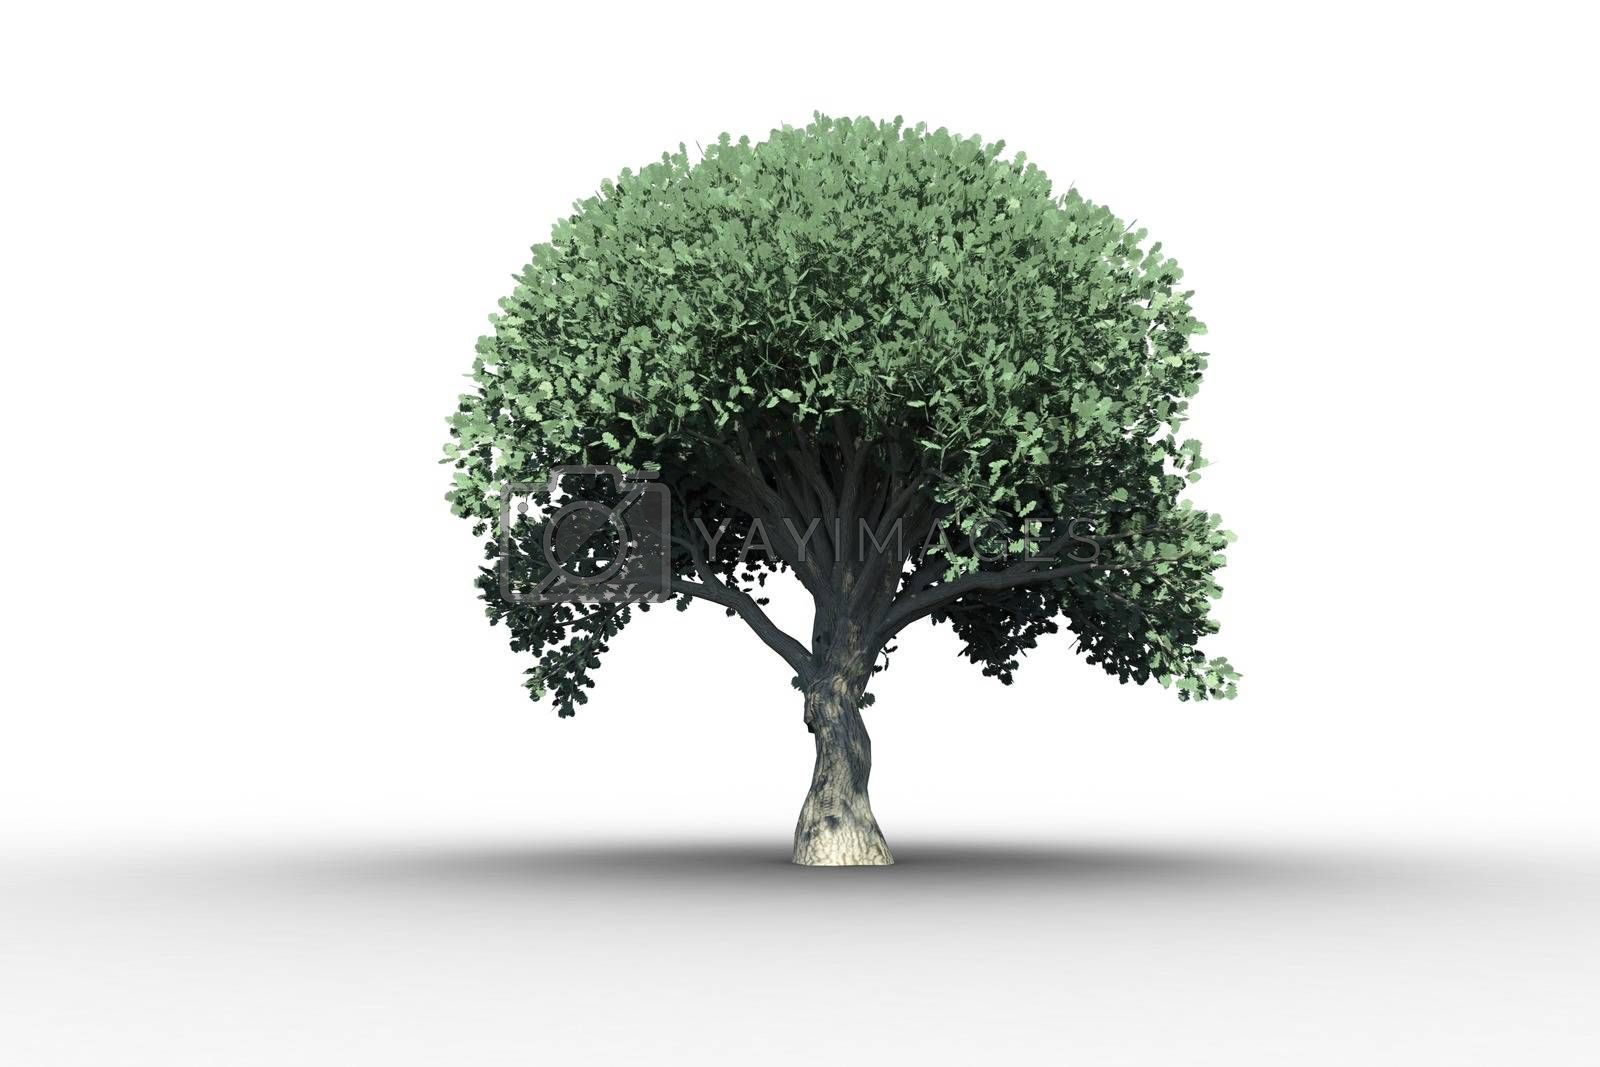 Royalty free image of Tree with green leaves growing by Wavebreakmedia